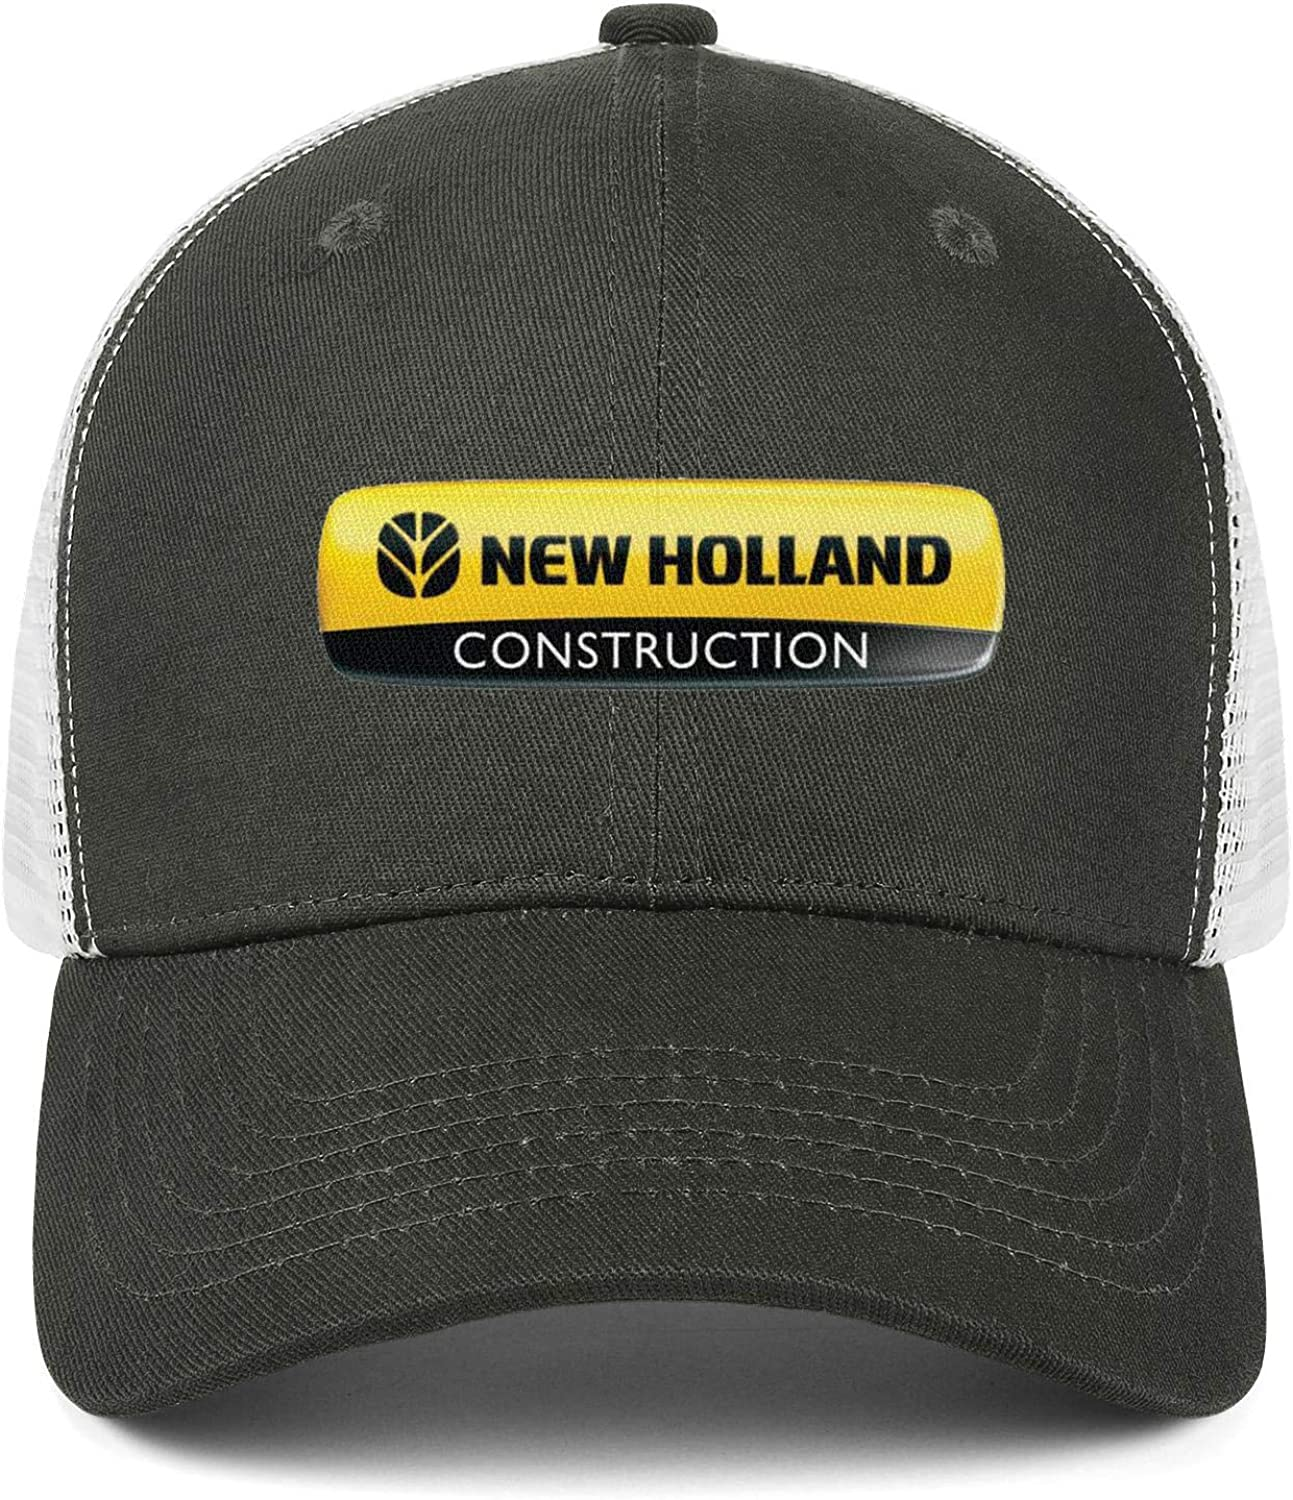 WintyHC New Holland Cowboy Hat Trucker Hat Adjustable Fits Gas Cap